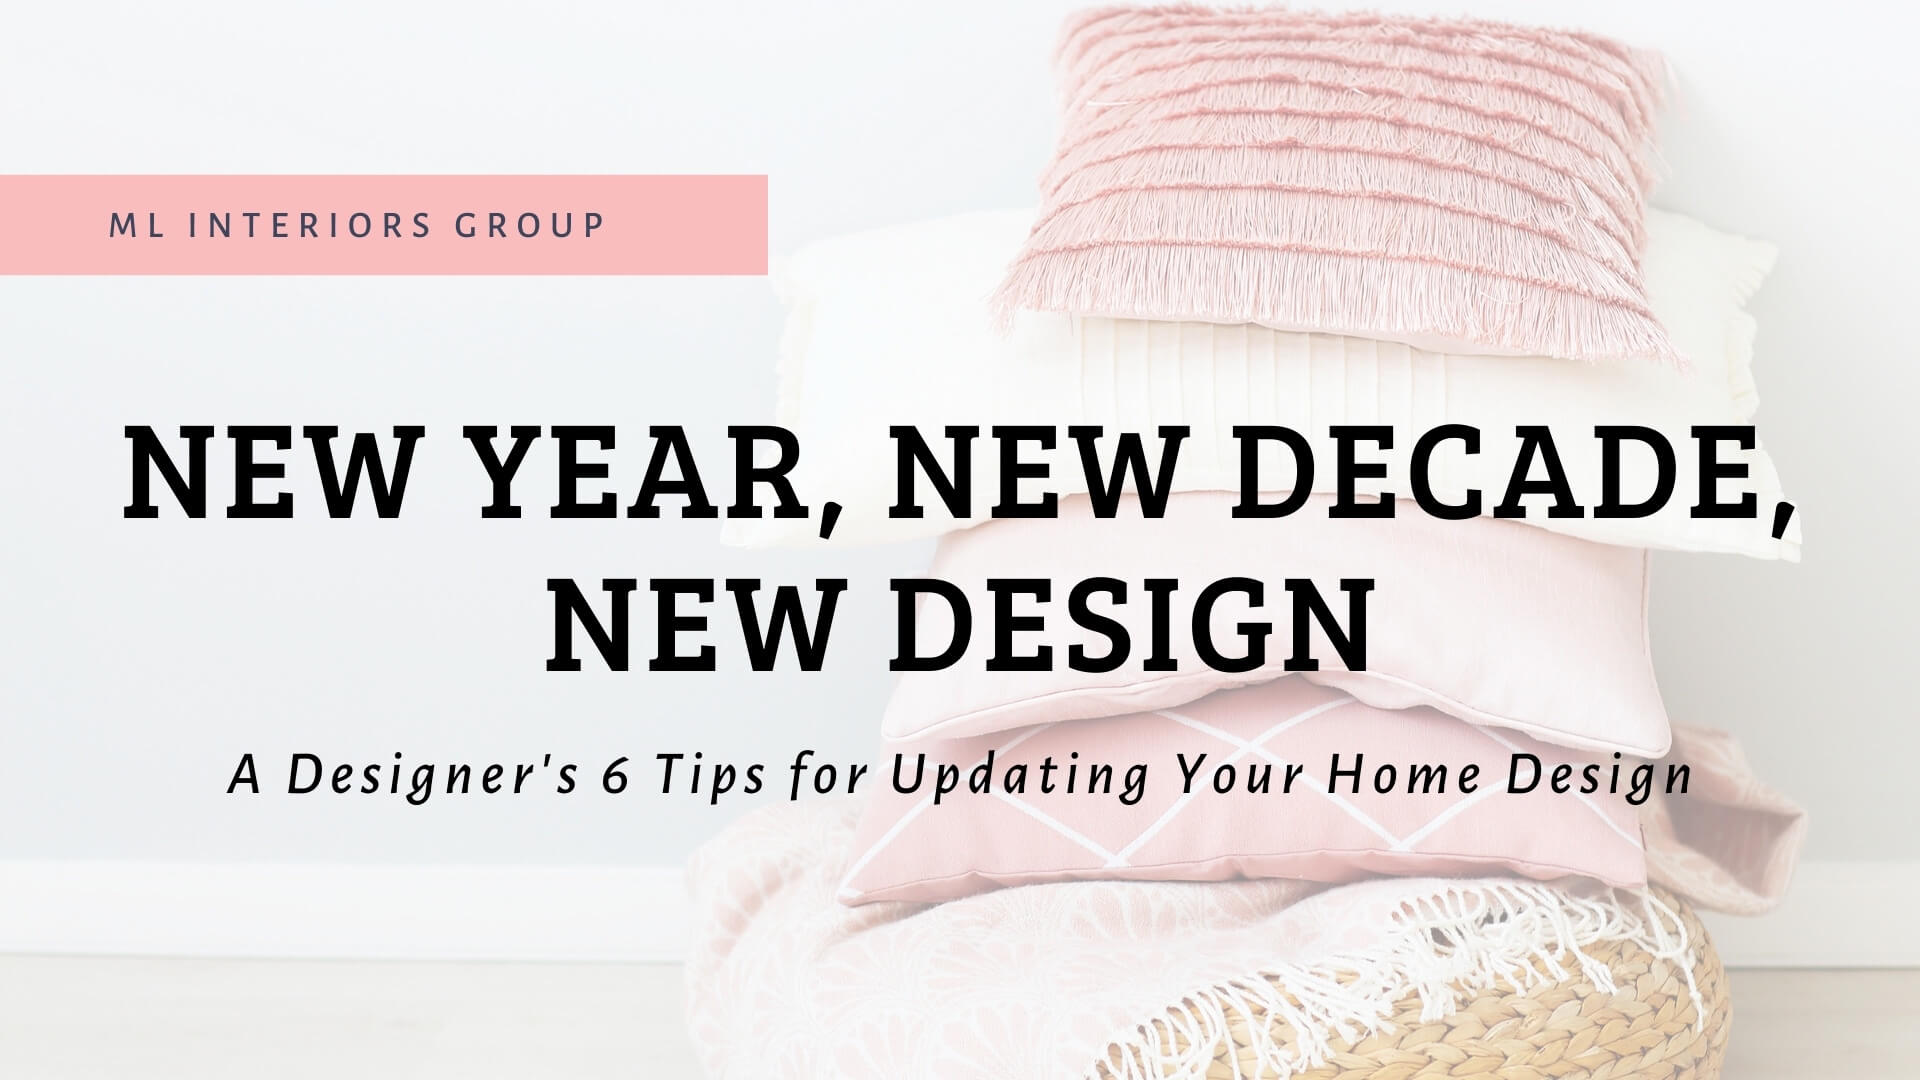 New Year, New Decade, New Design